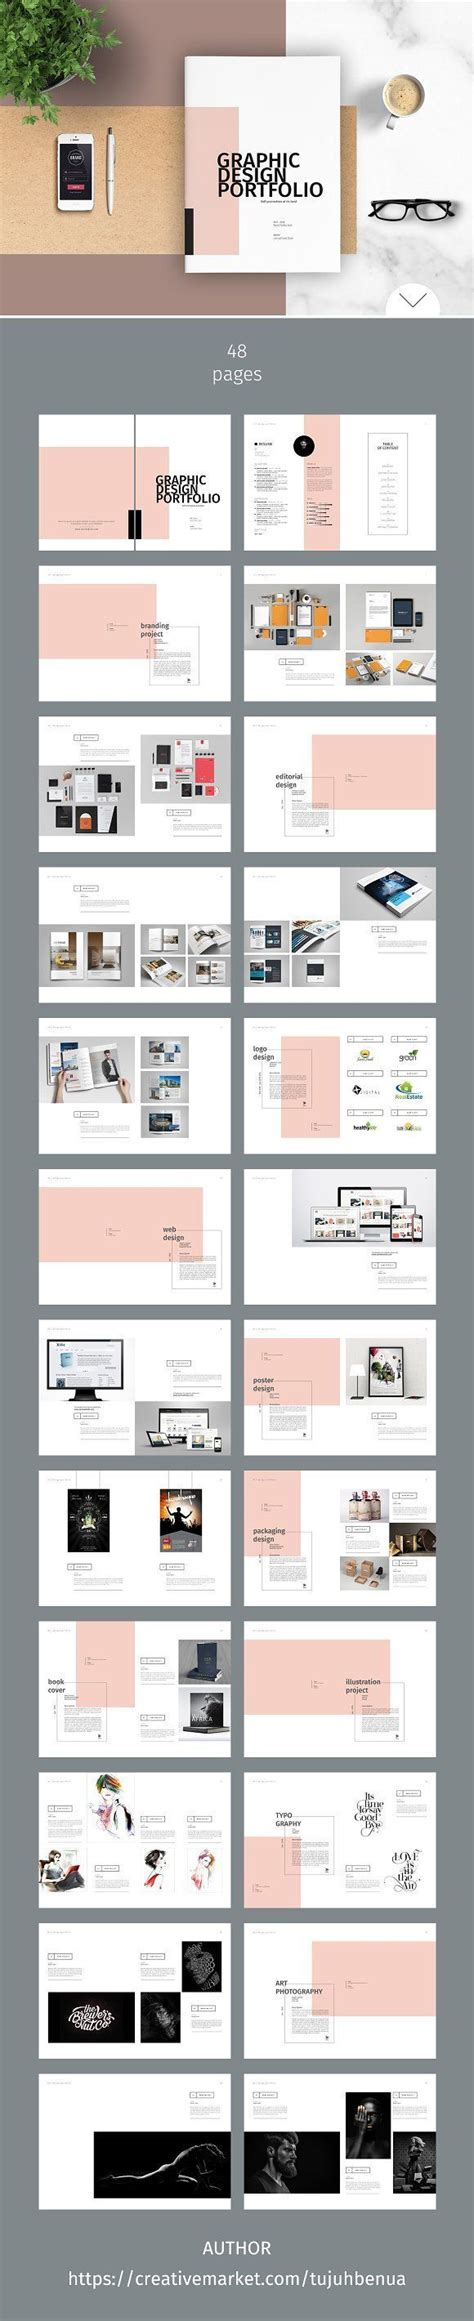 Design Process Book Template Valoblogi Com Process Book Template